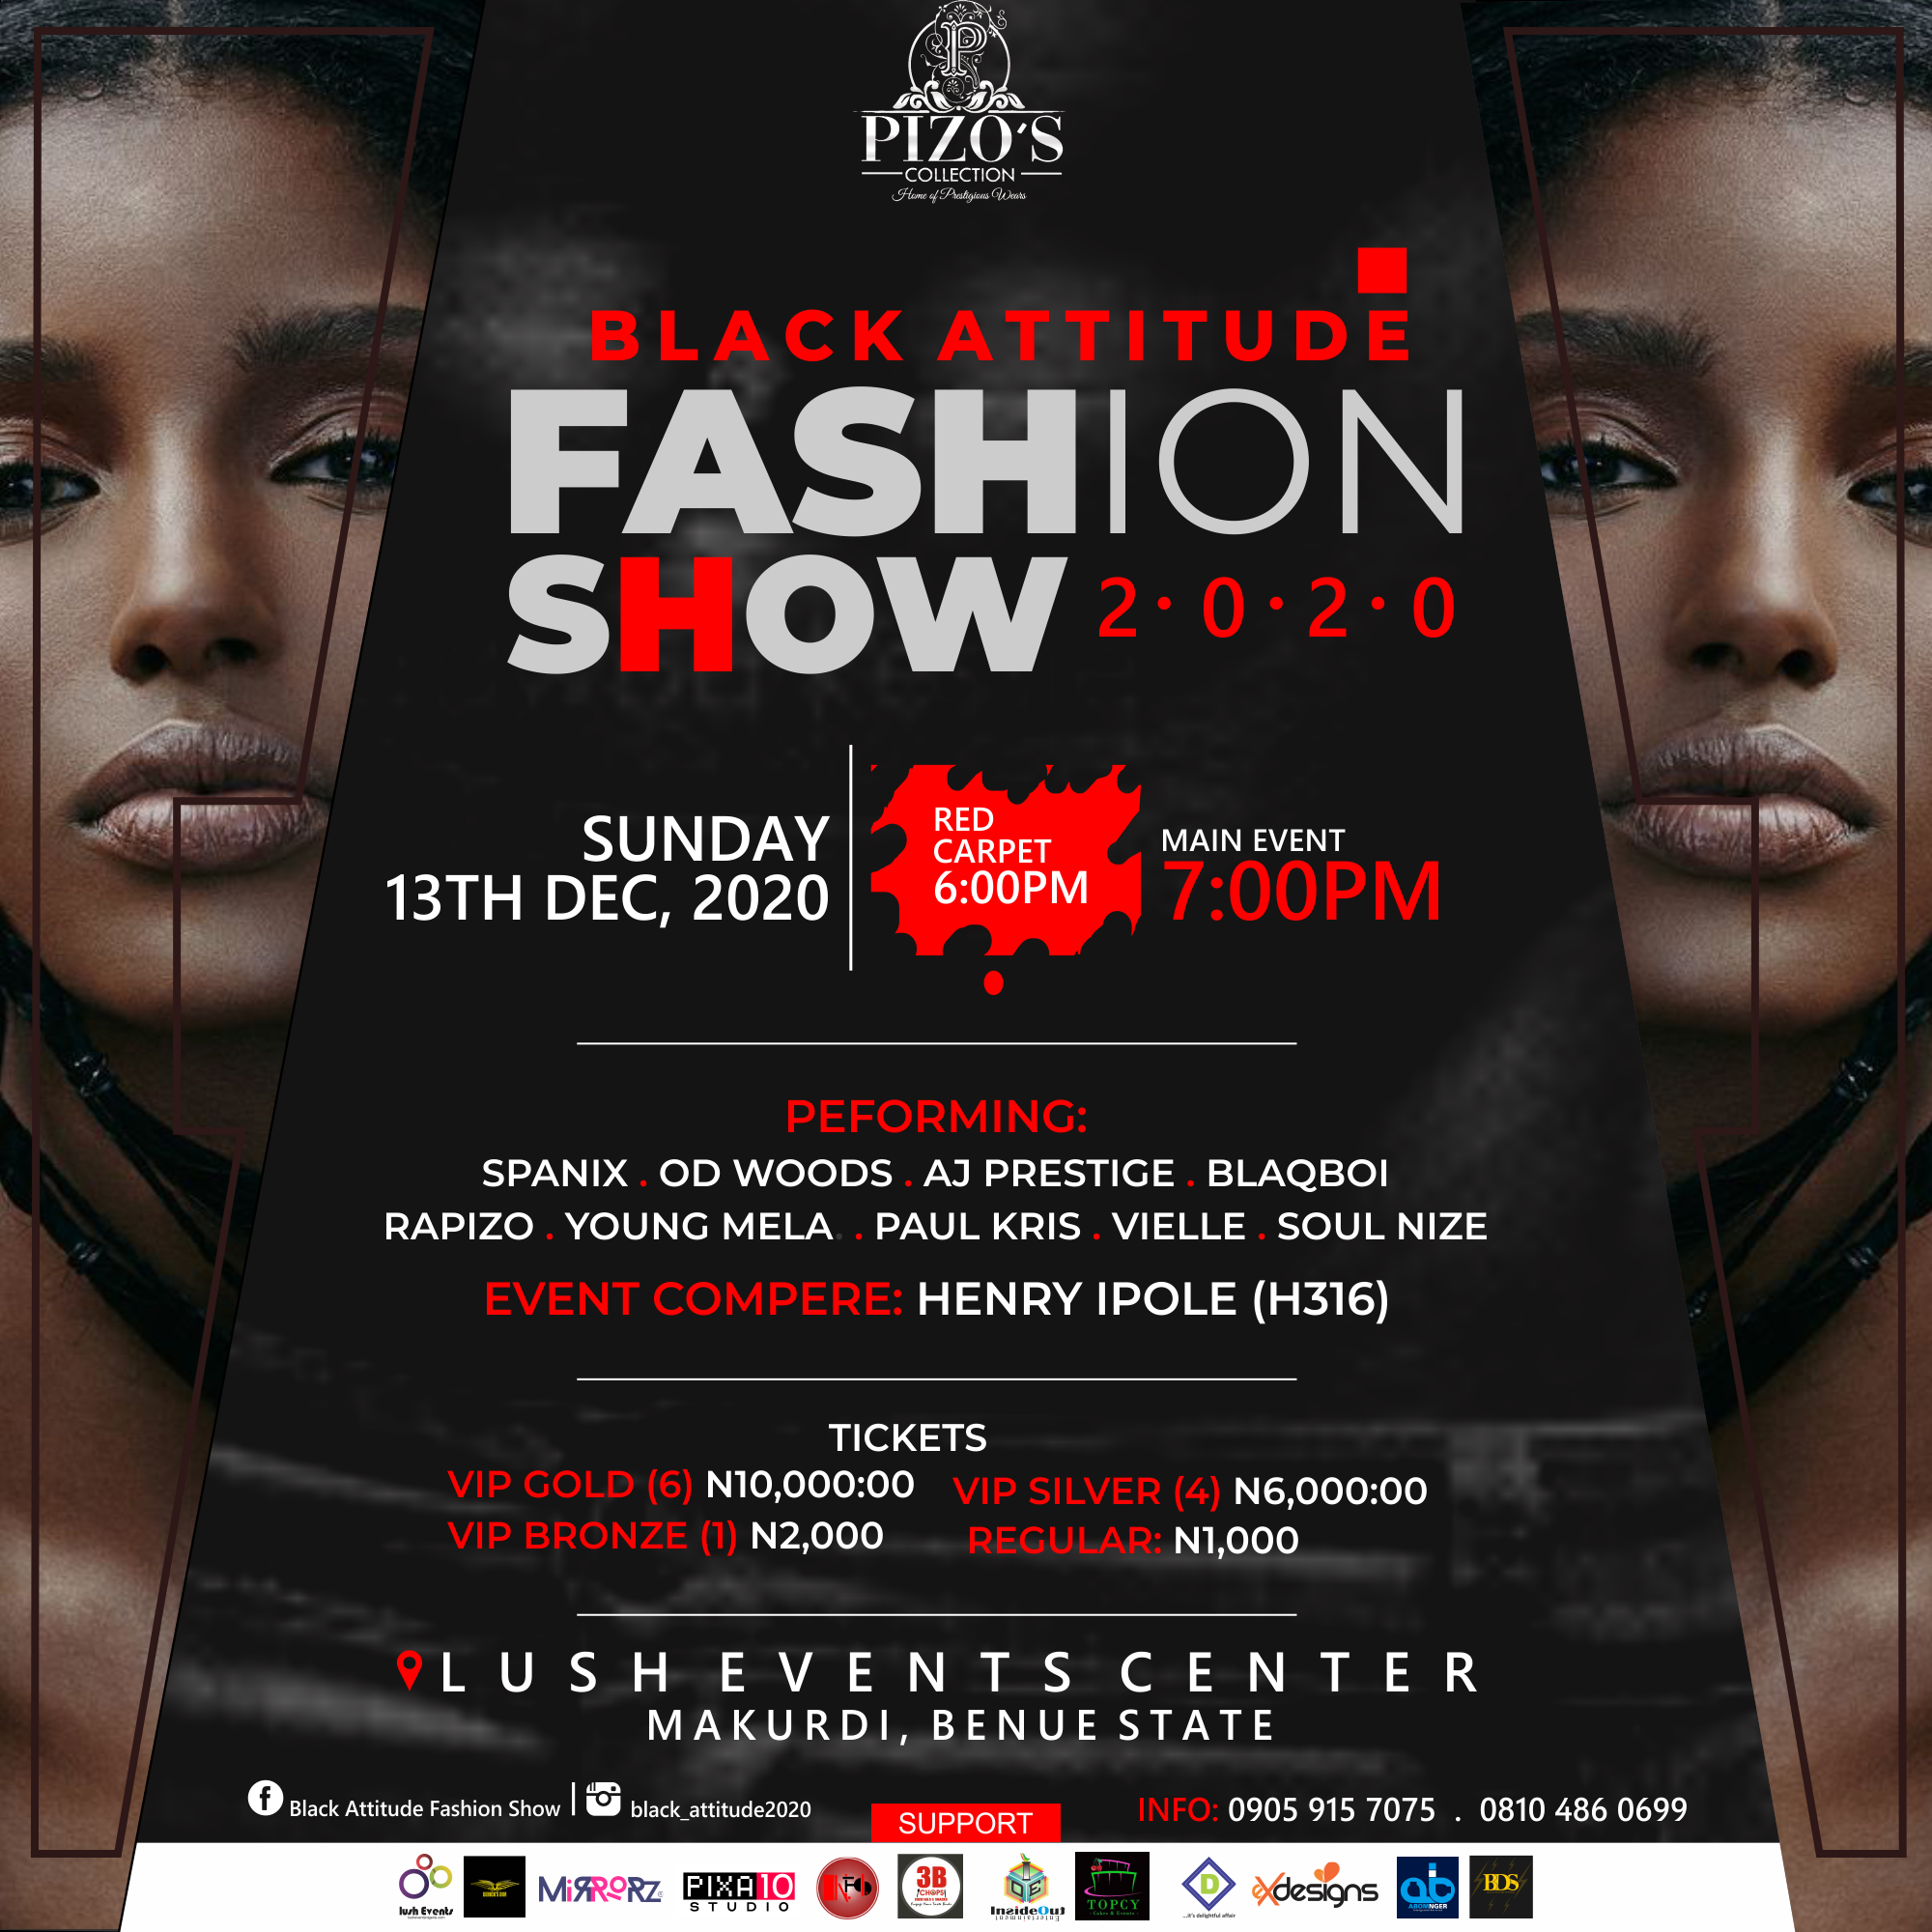 A DECEMBER FASHION EXPERIENCE FROM THE STABLES OF PIZOS COLLECTIONS COMES THE BLACK ATTITUDE FASHION SHOW